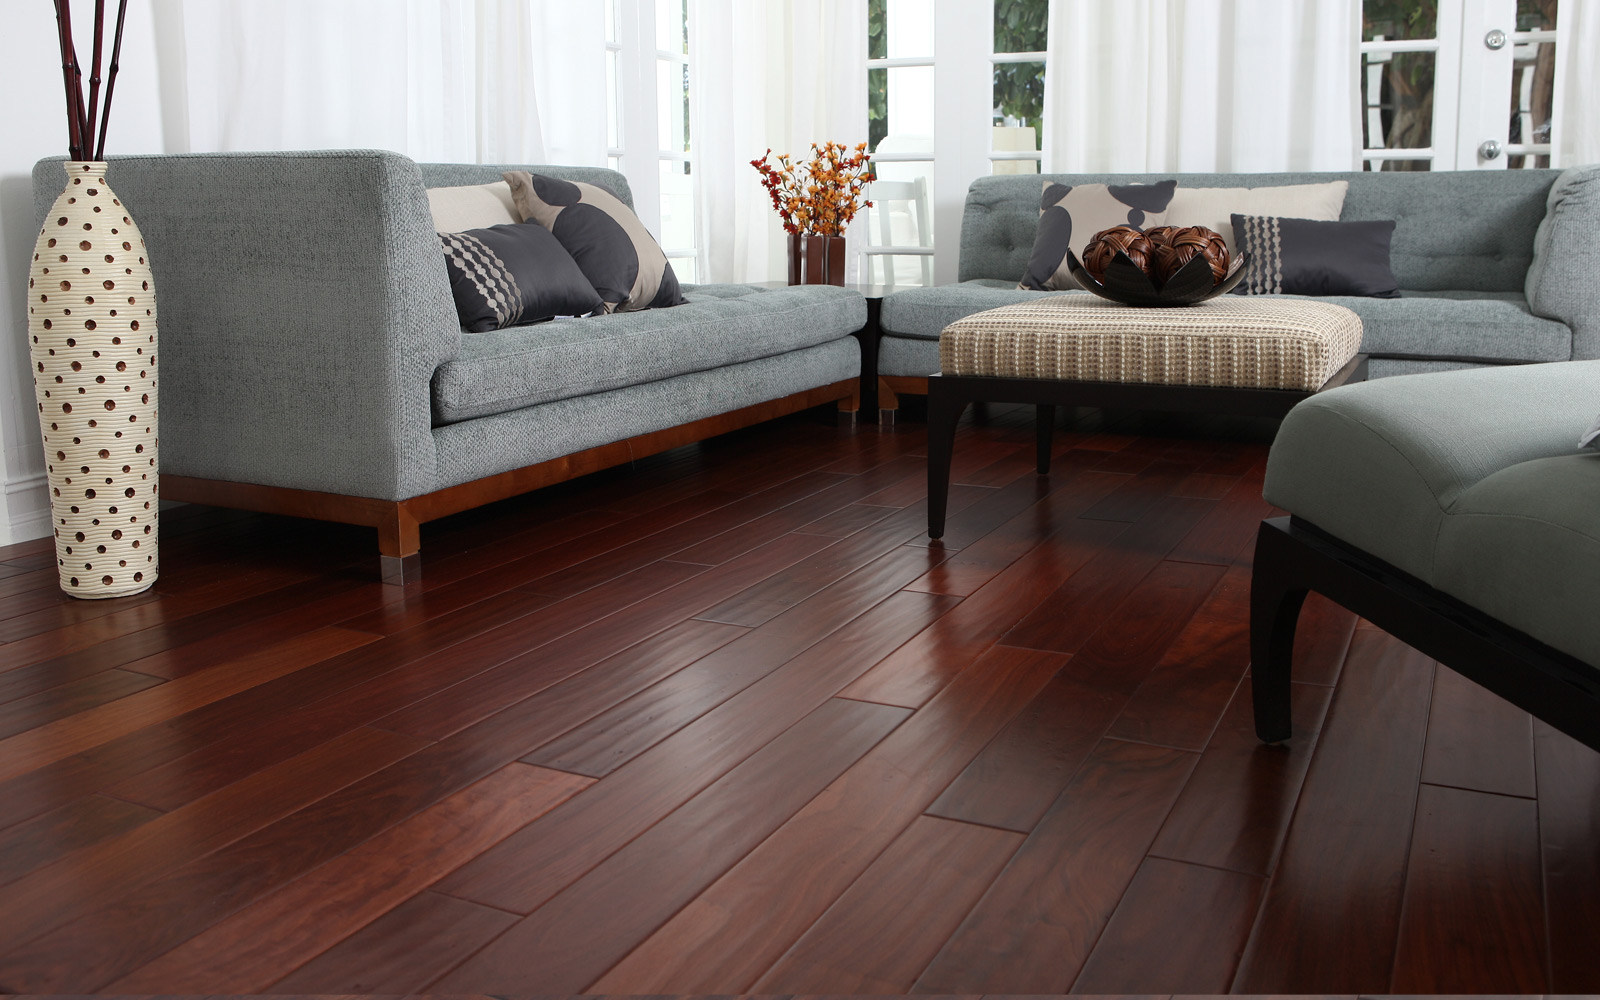 5 interior design ideas dark hardwood floors | kinjenk house design